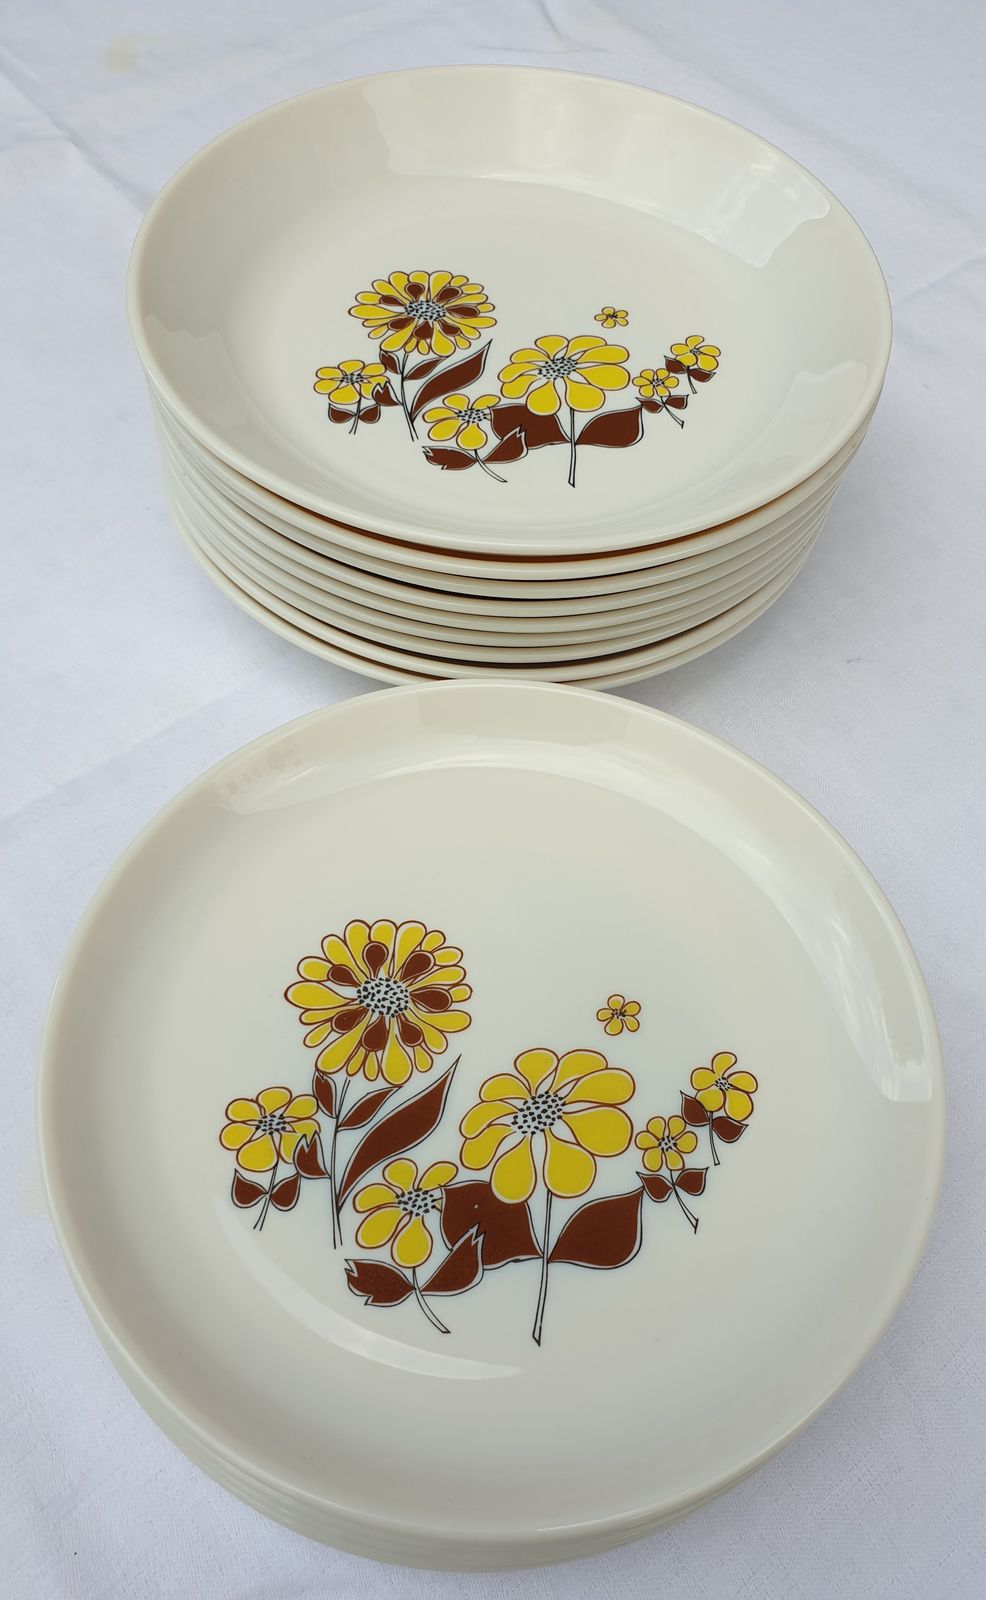 SET 5+9 ASSIETTES RETRO 1970 SOVIREL MARGUERITES - 30 euros